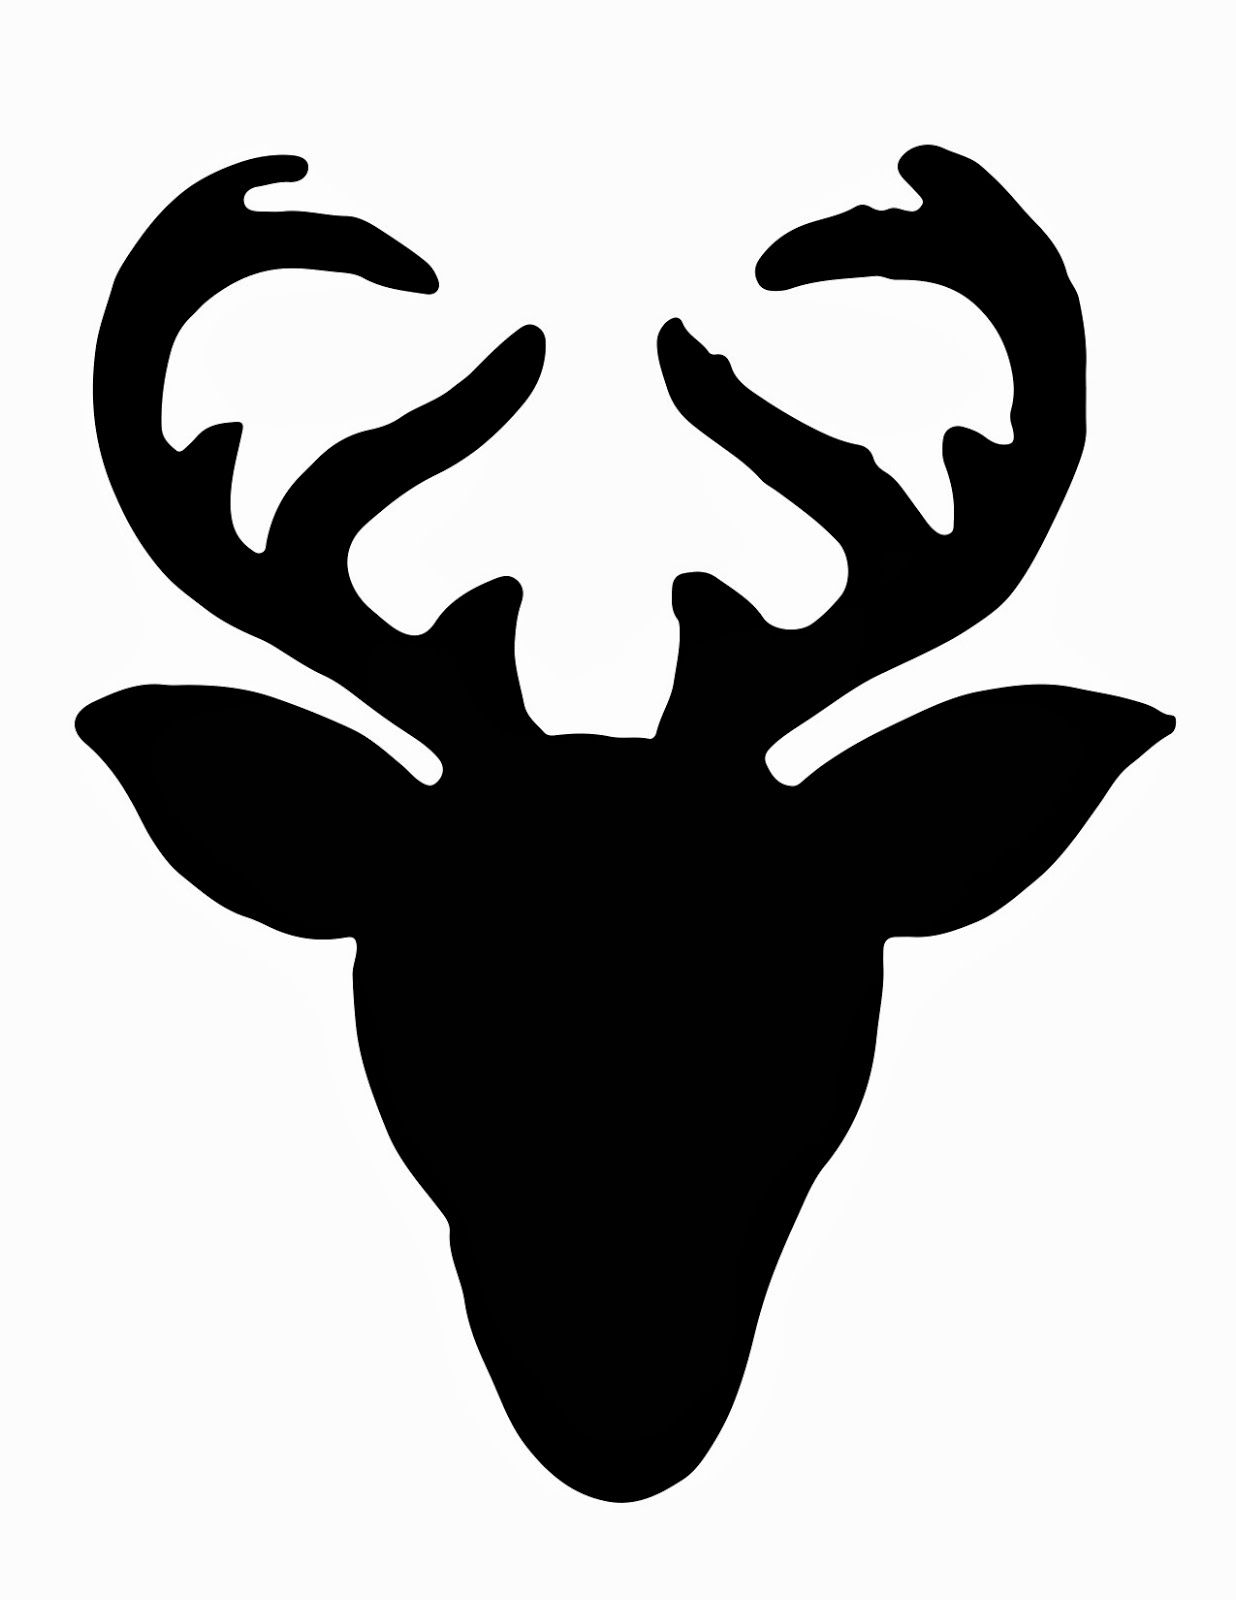 reindeer head silhouette clipart best clipart best christmas card rh pinterest com deer head clip art black and white deer head clip art black and white